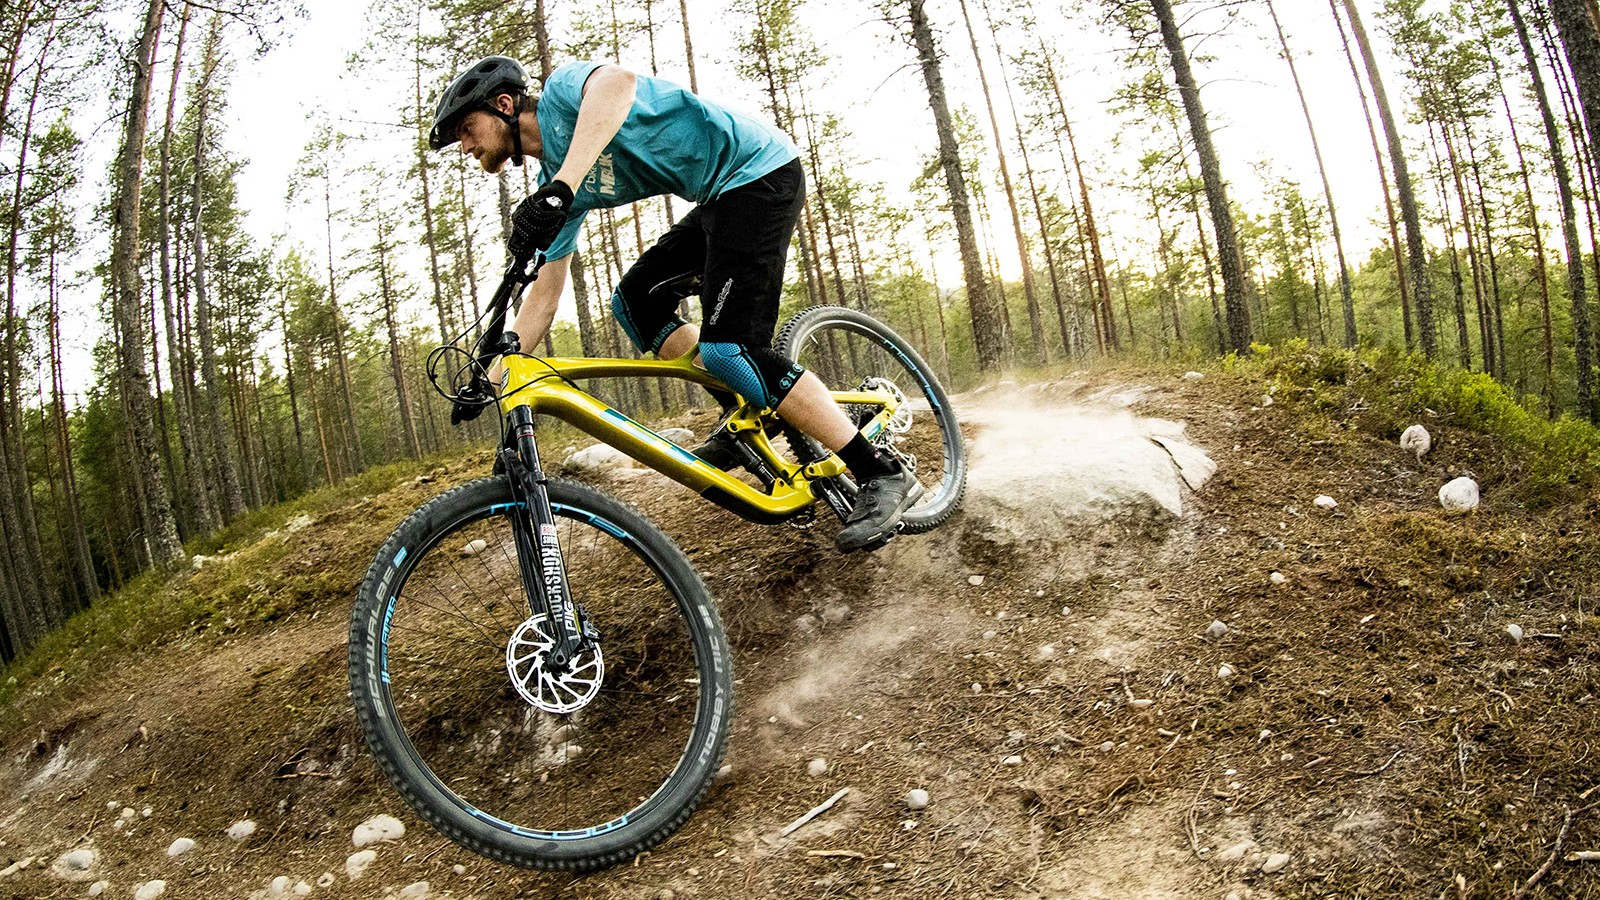 The Sensor has a more cross-country feel, but the geometry has a nod towards rowdy riding